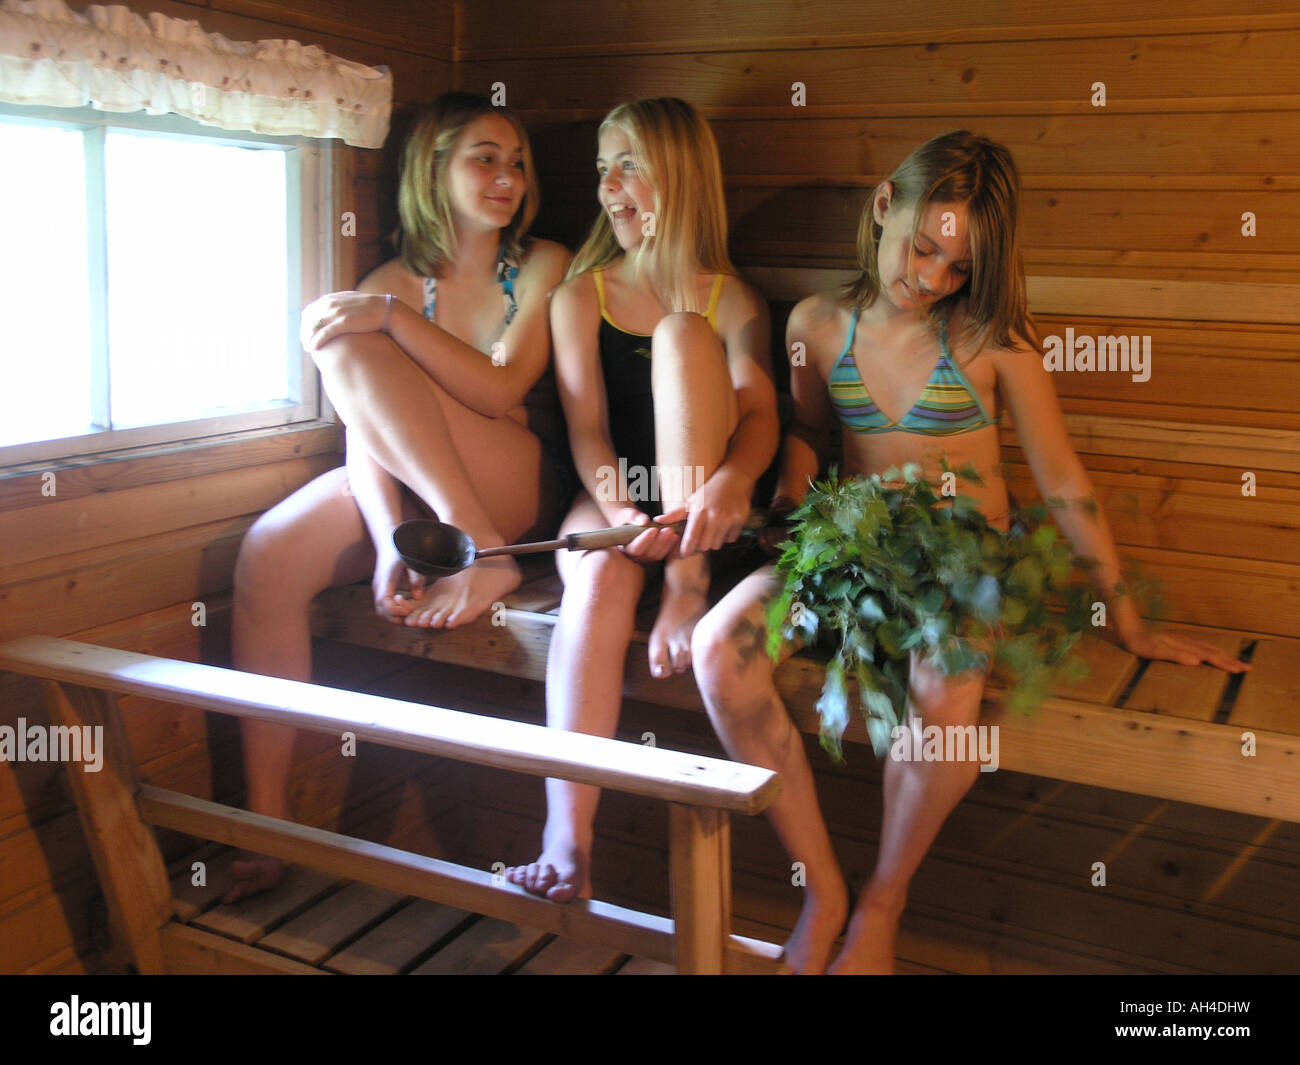 teen Russian girls sauna